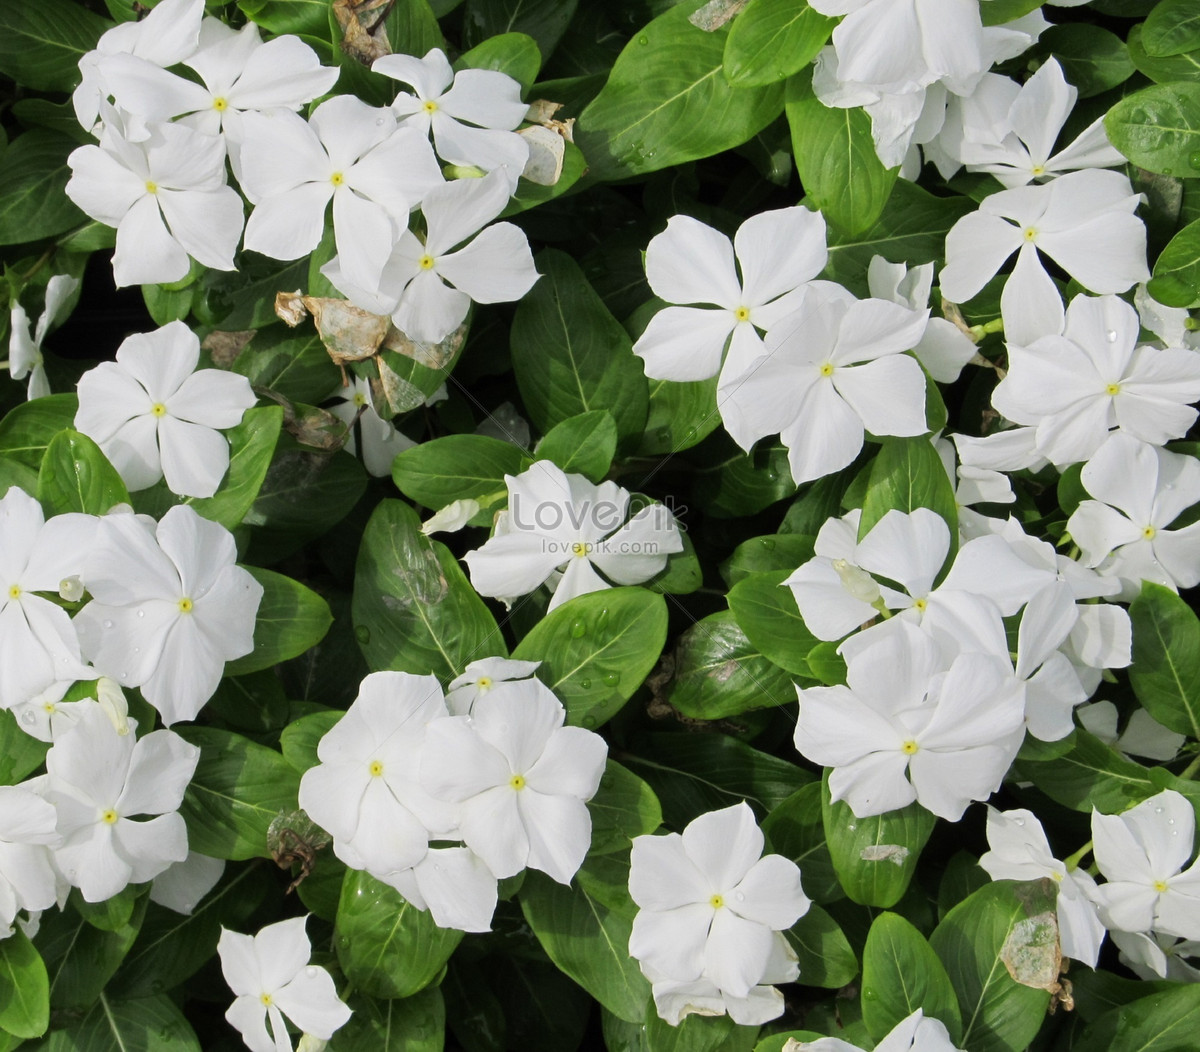 Small Vines And White Spring Flowers Photo Imagepicture Free